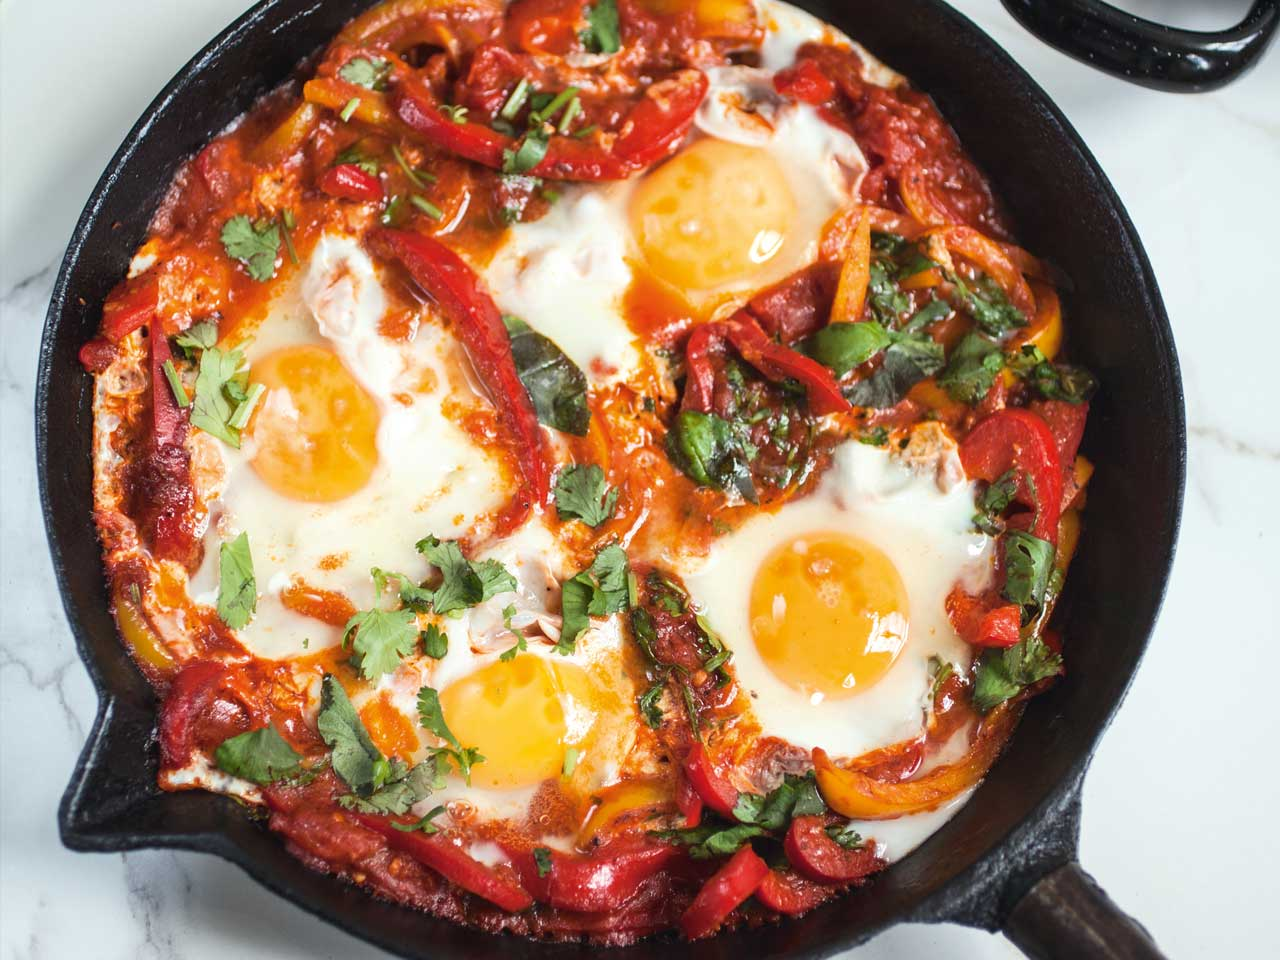 shakshuka breakfast eggs romantic tomatoes recipes food poached africa saga dish cooking magazine six